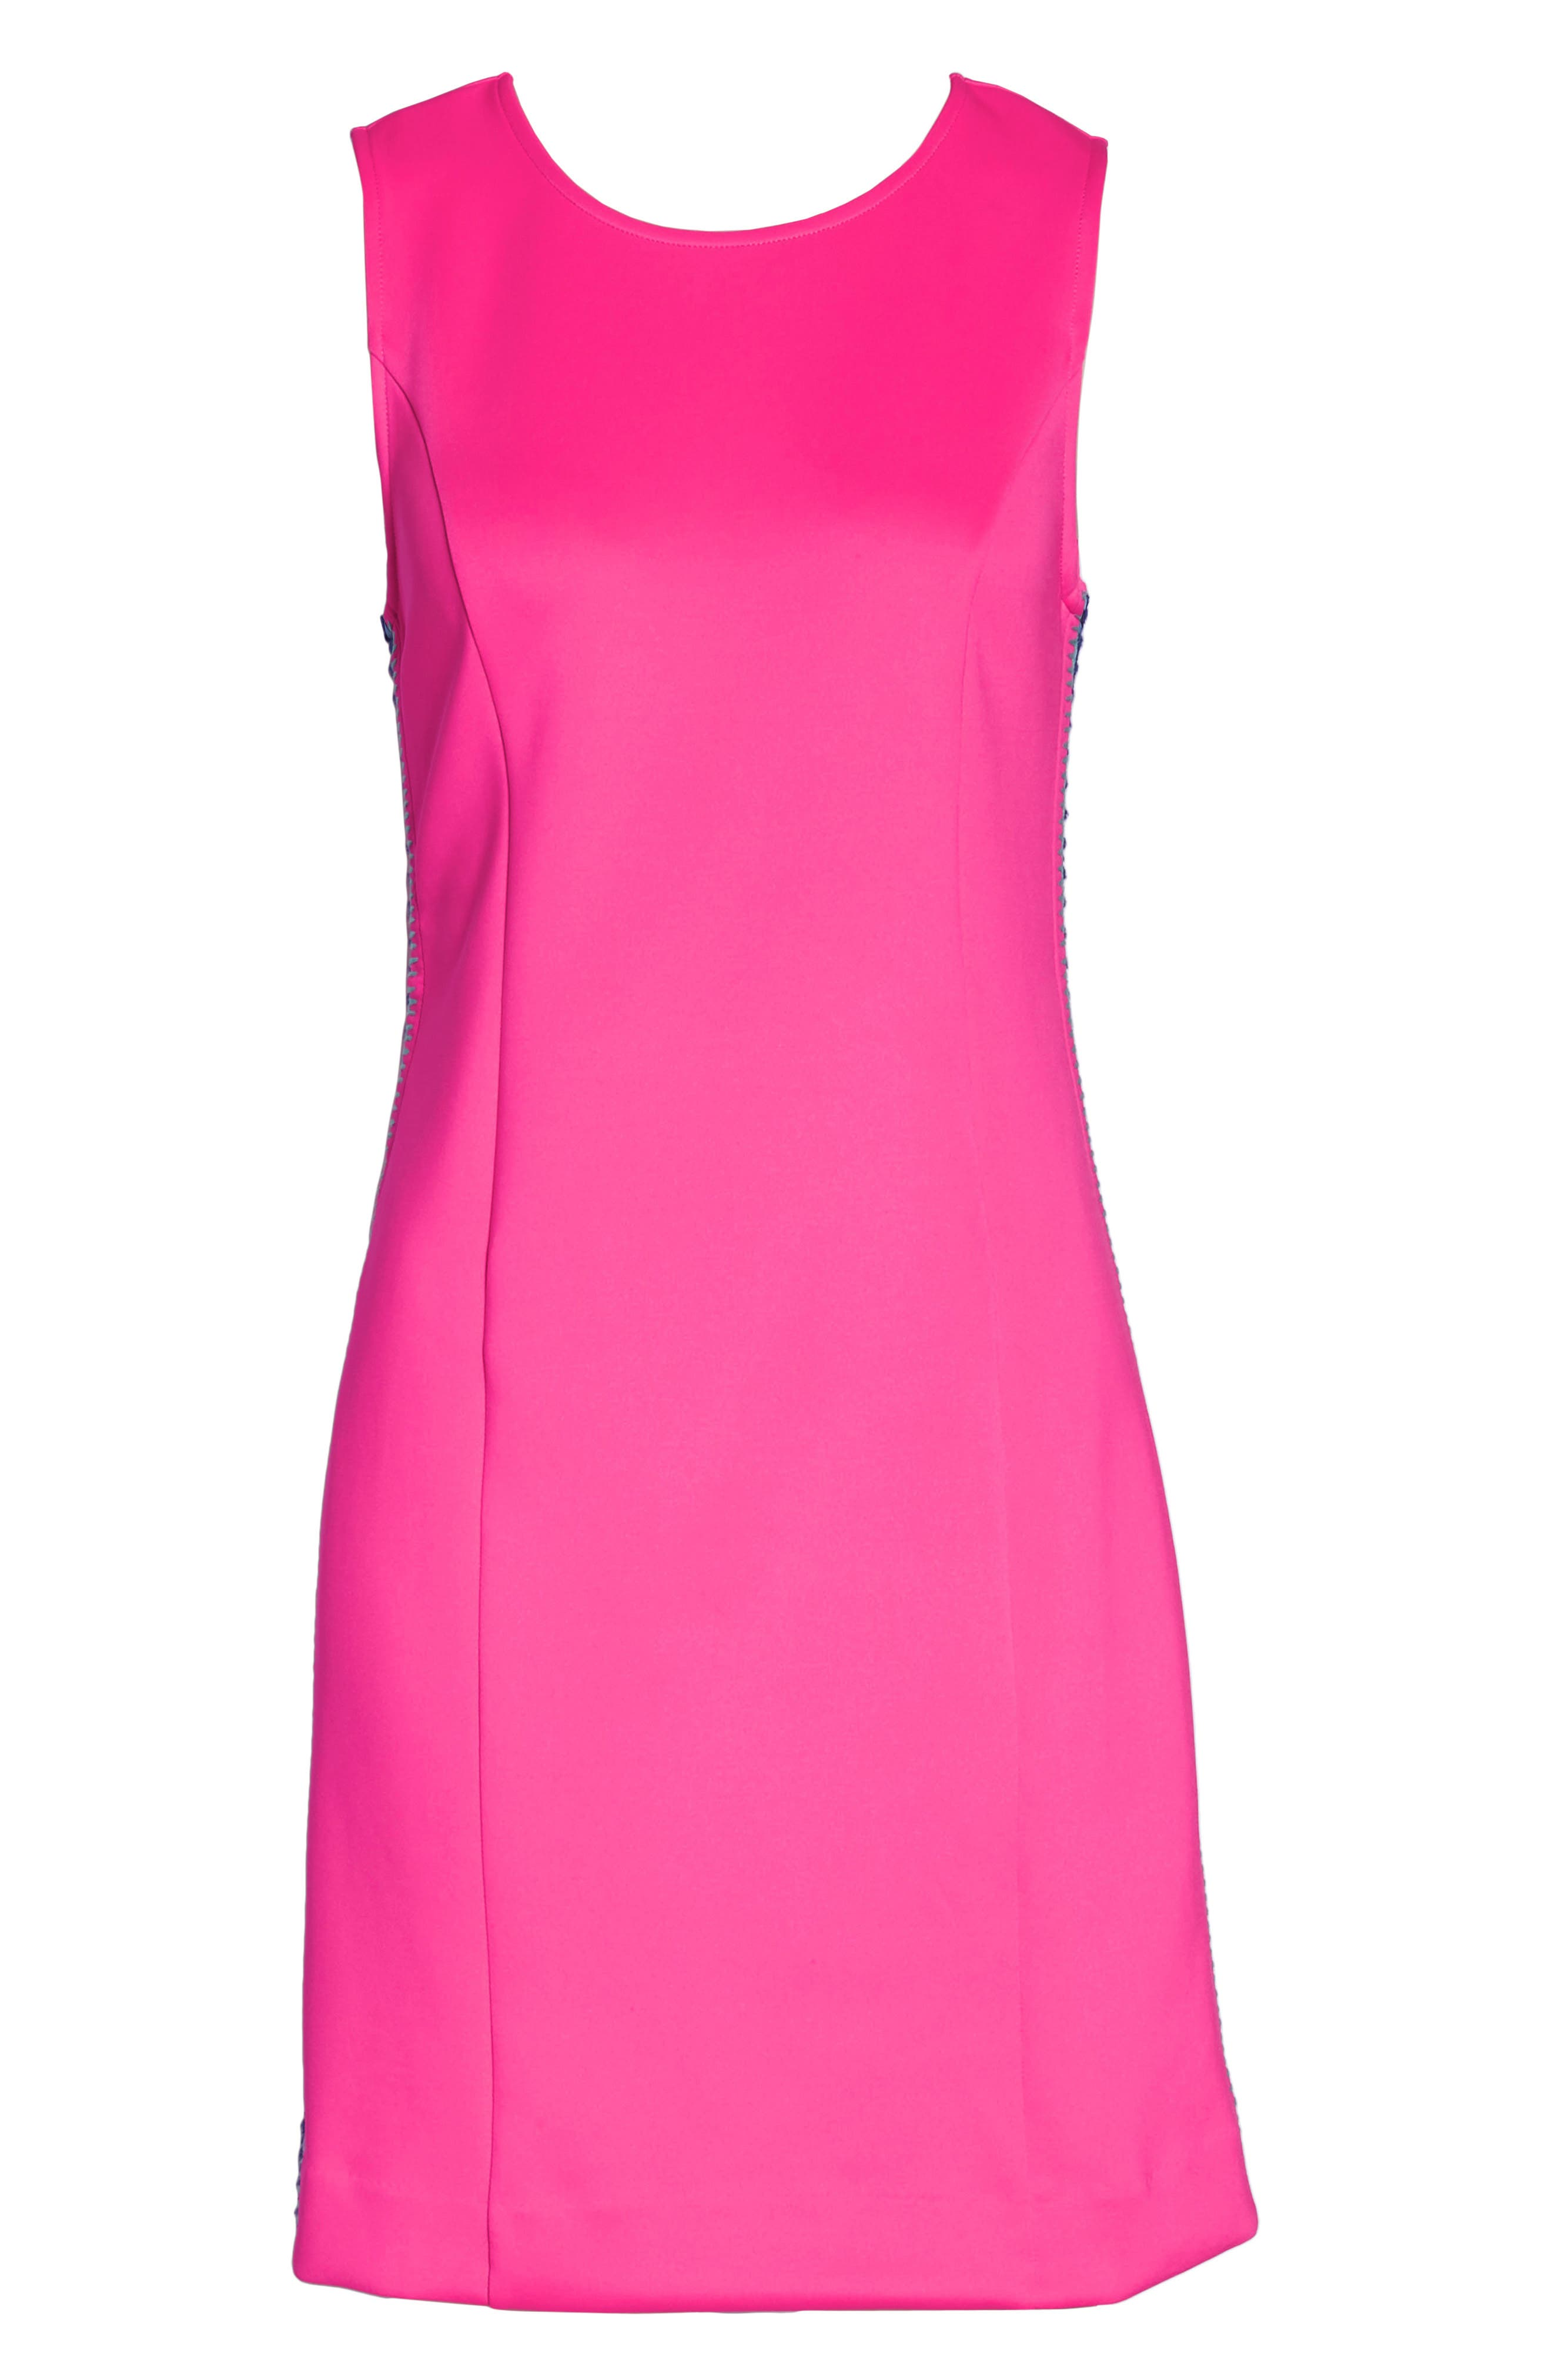 Mila Sheath Dress,                             Alternate thumbnail 6, color,                             Raz Berry